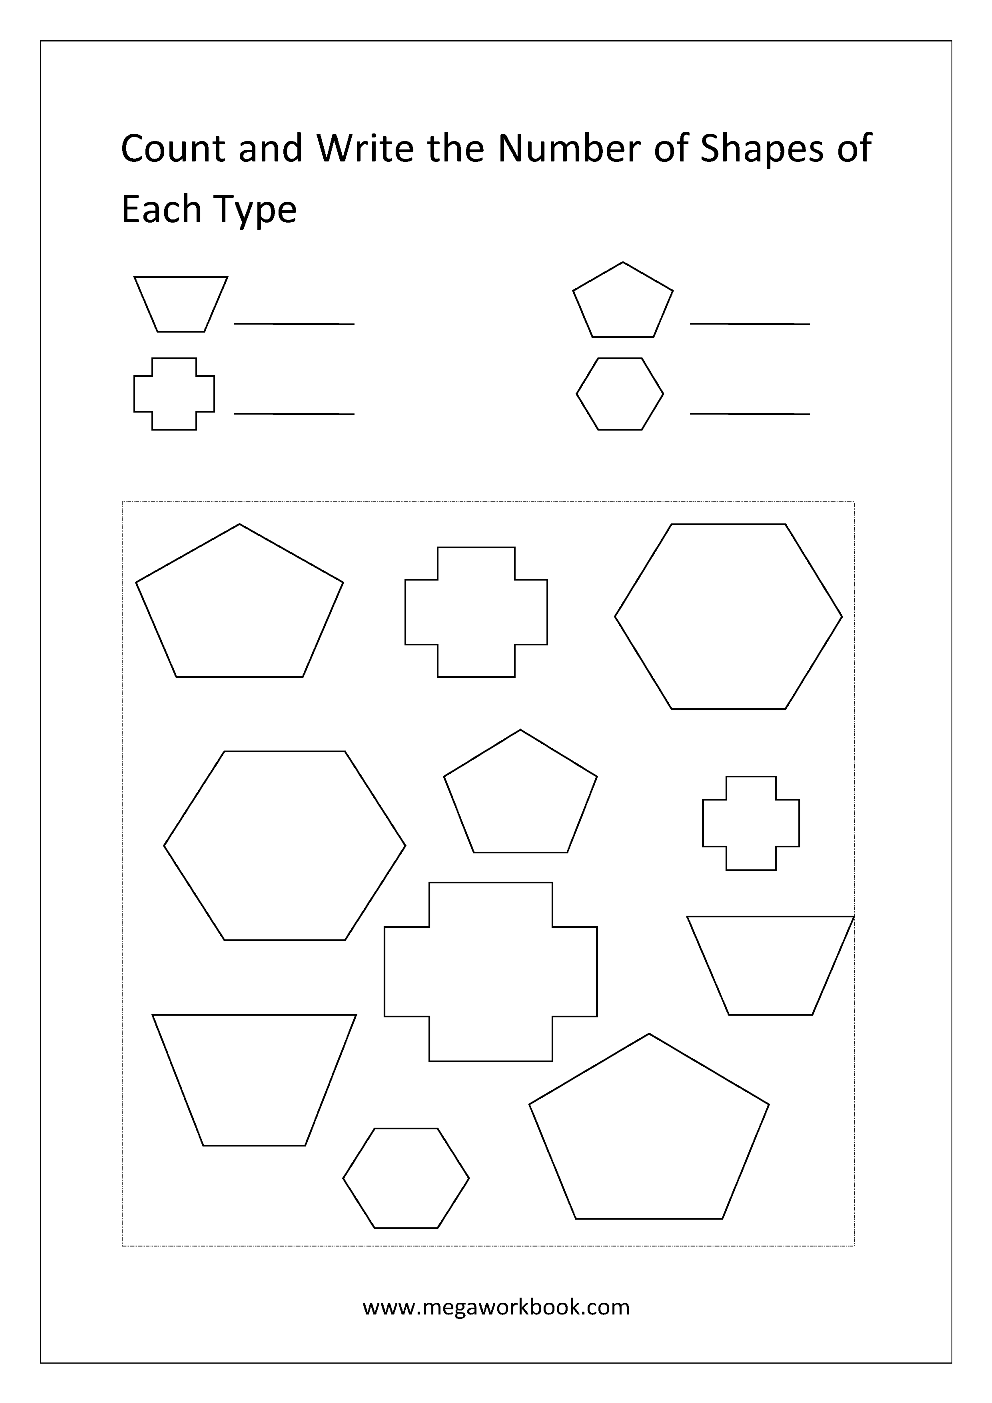 Free Shapes Worksheets Counting The Shapes Megaworkbook